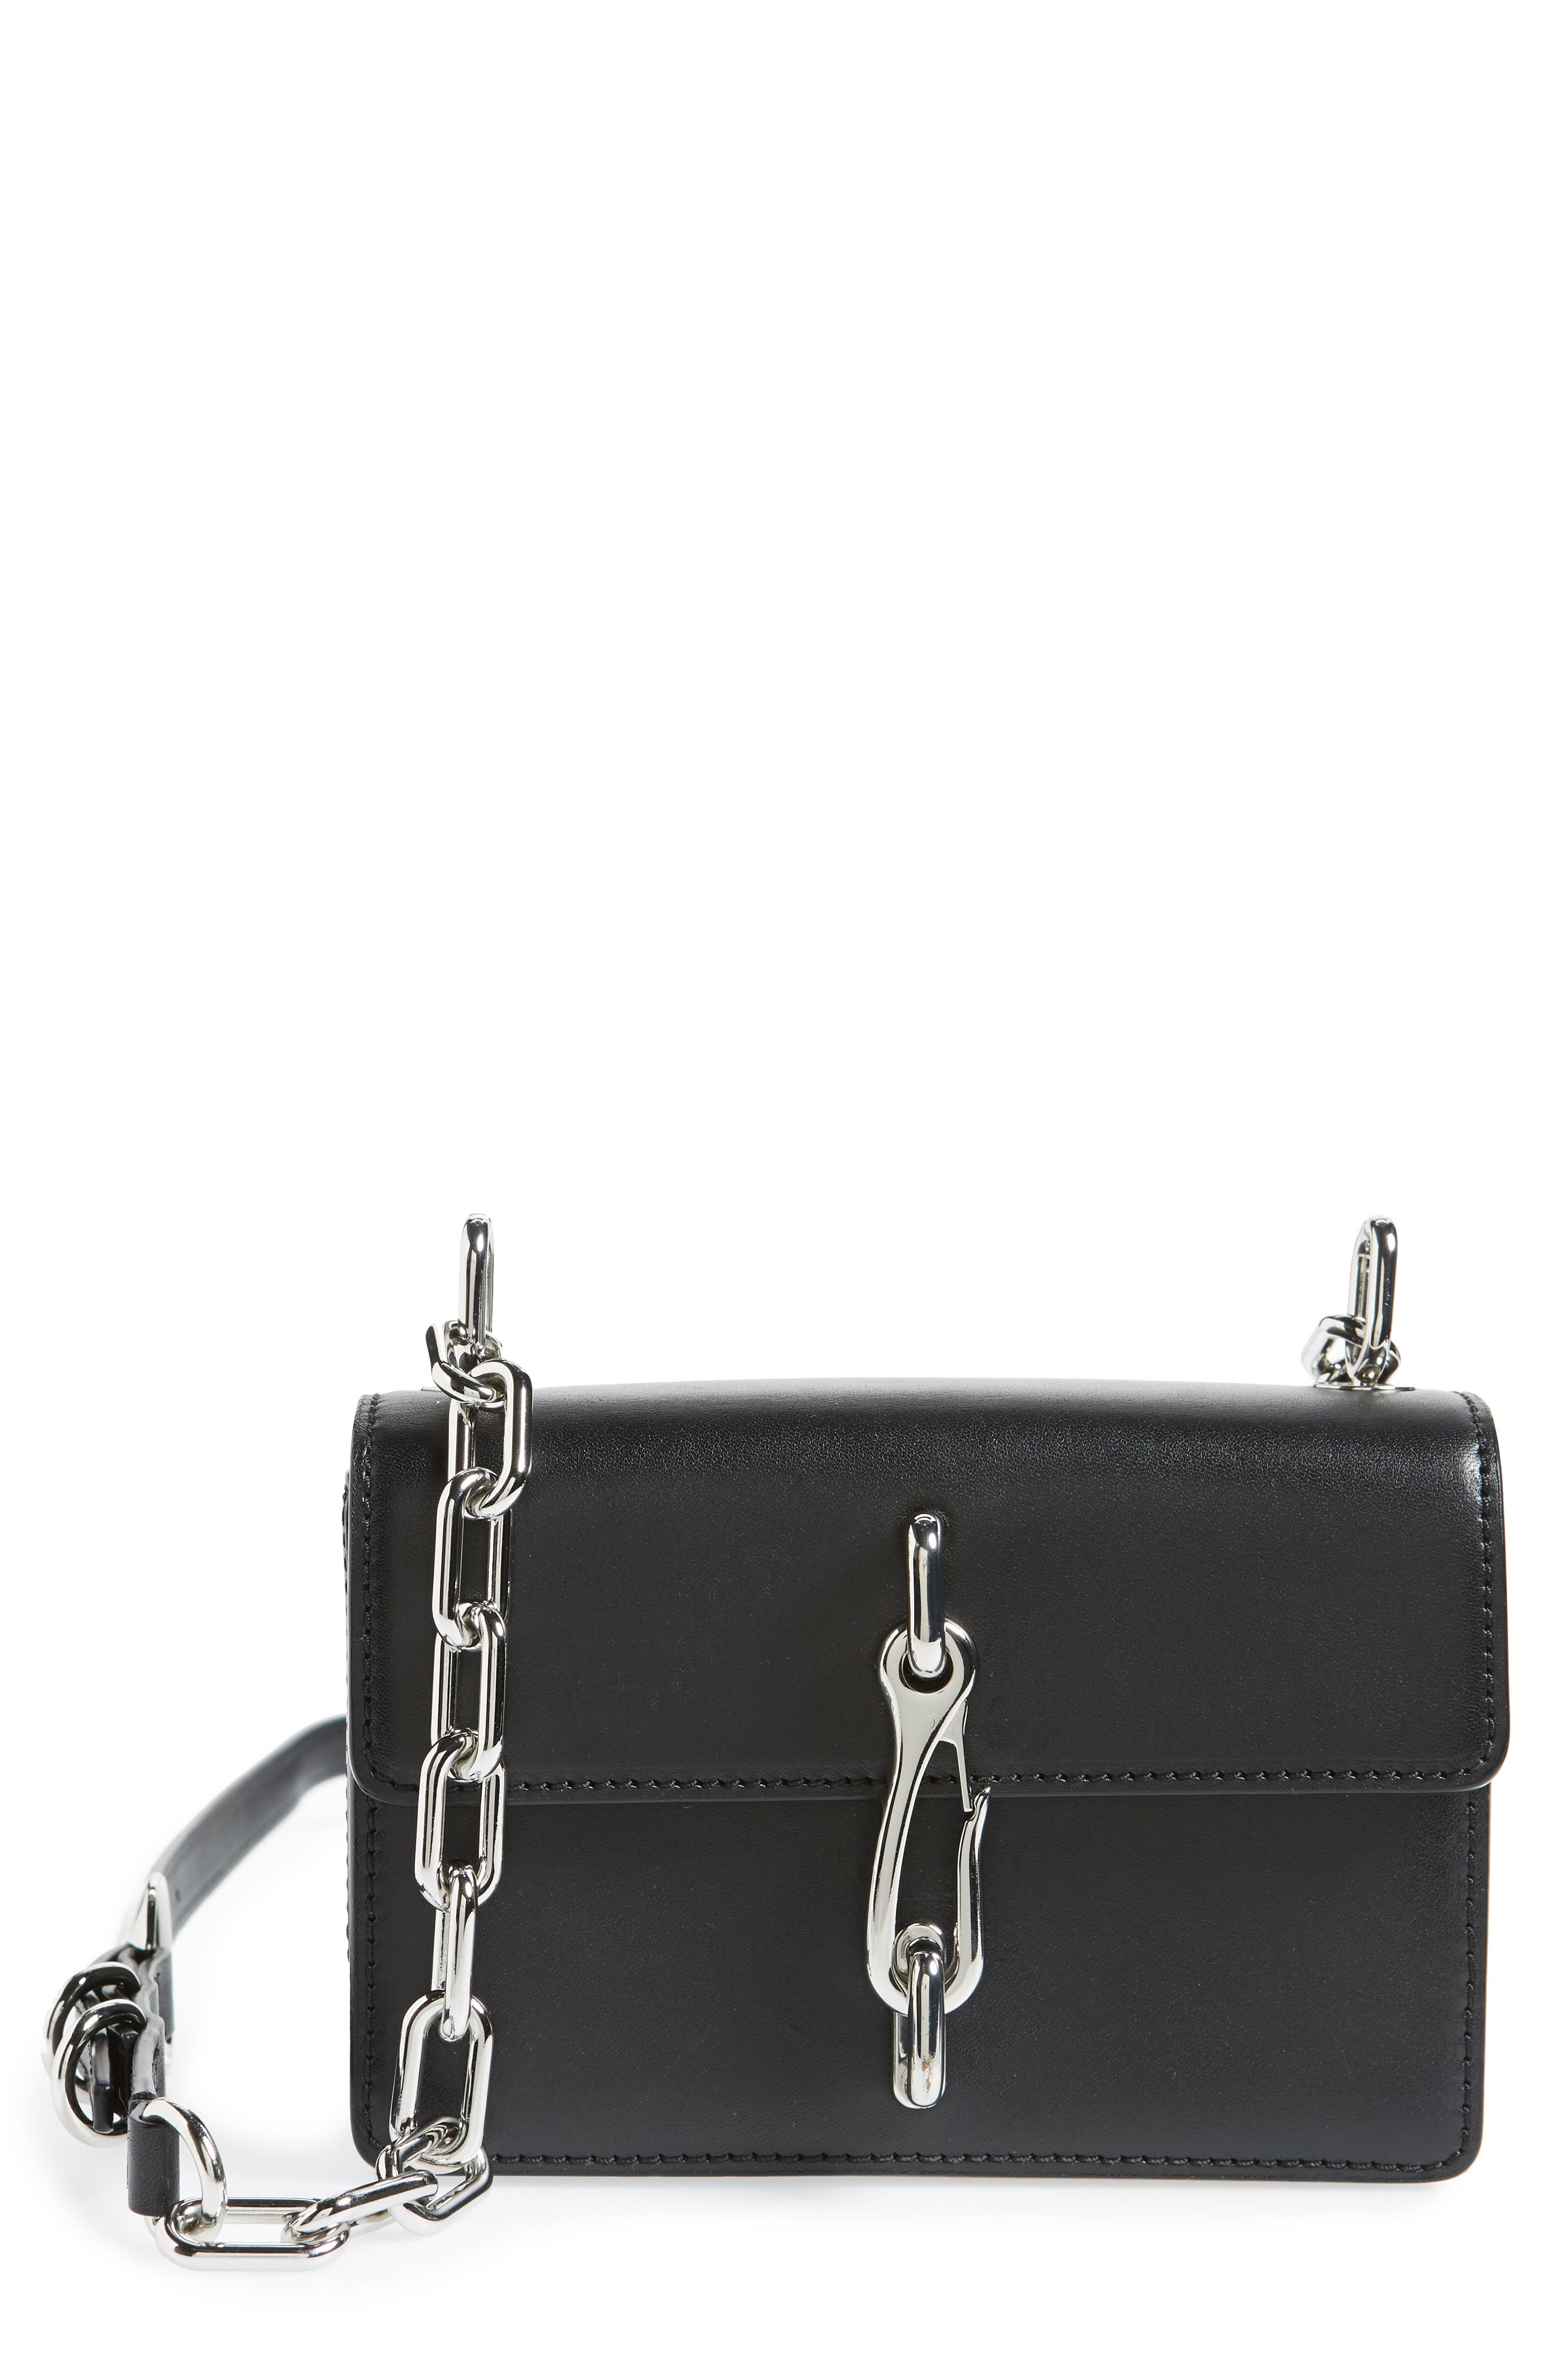 Hook Small Leather Crossbody Bag,                             Main thumbnail 1, color,                             Black